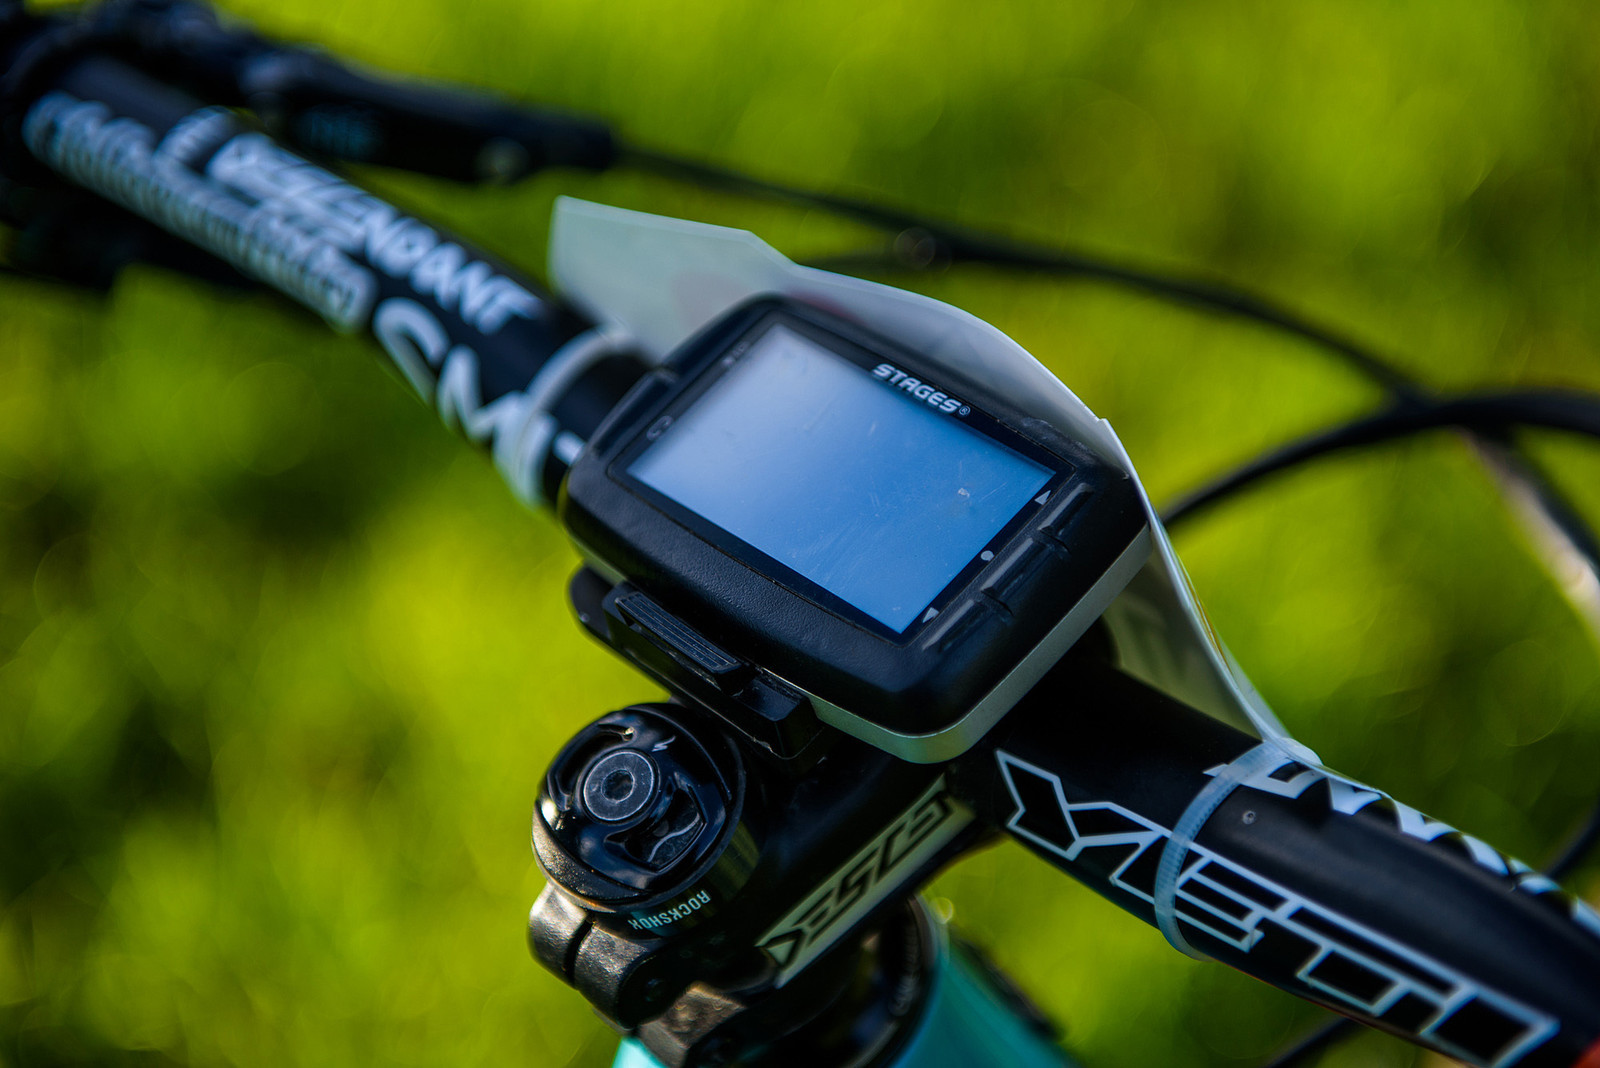 Stages Computer for All the Data - Nate Hills' Yeti SB5 with 2019 RockShox Lyrik - Mountain Biking Pictures - Vital MTB